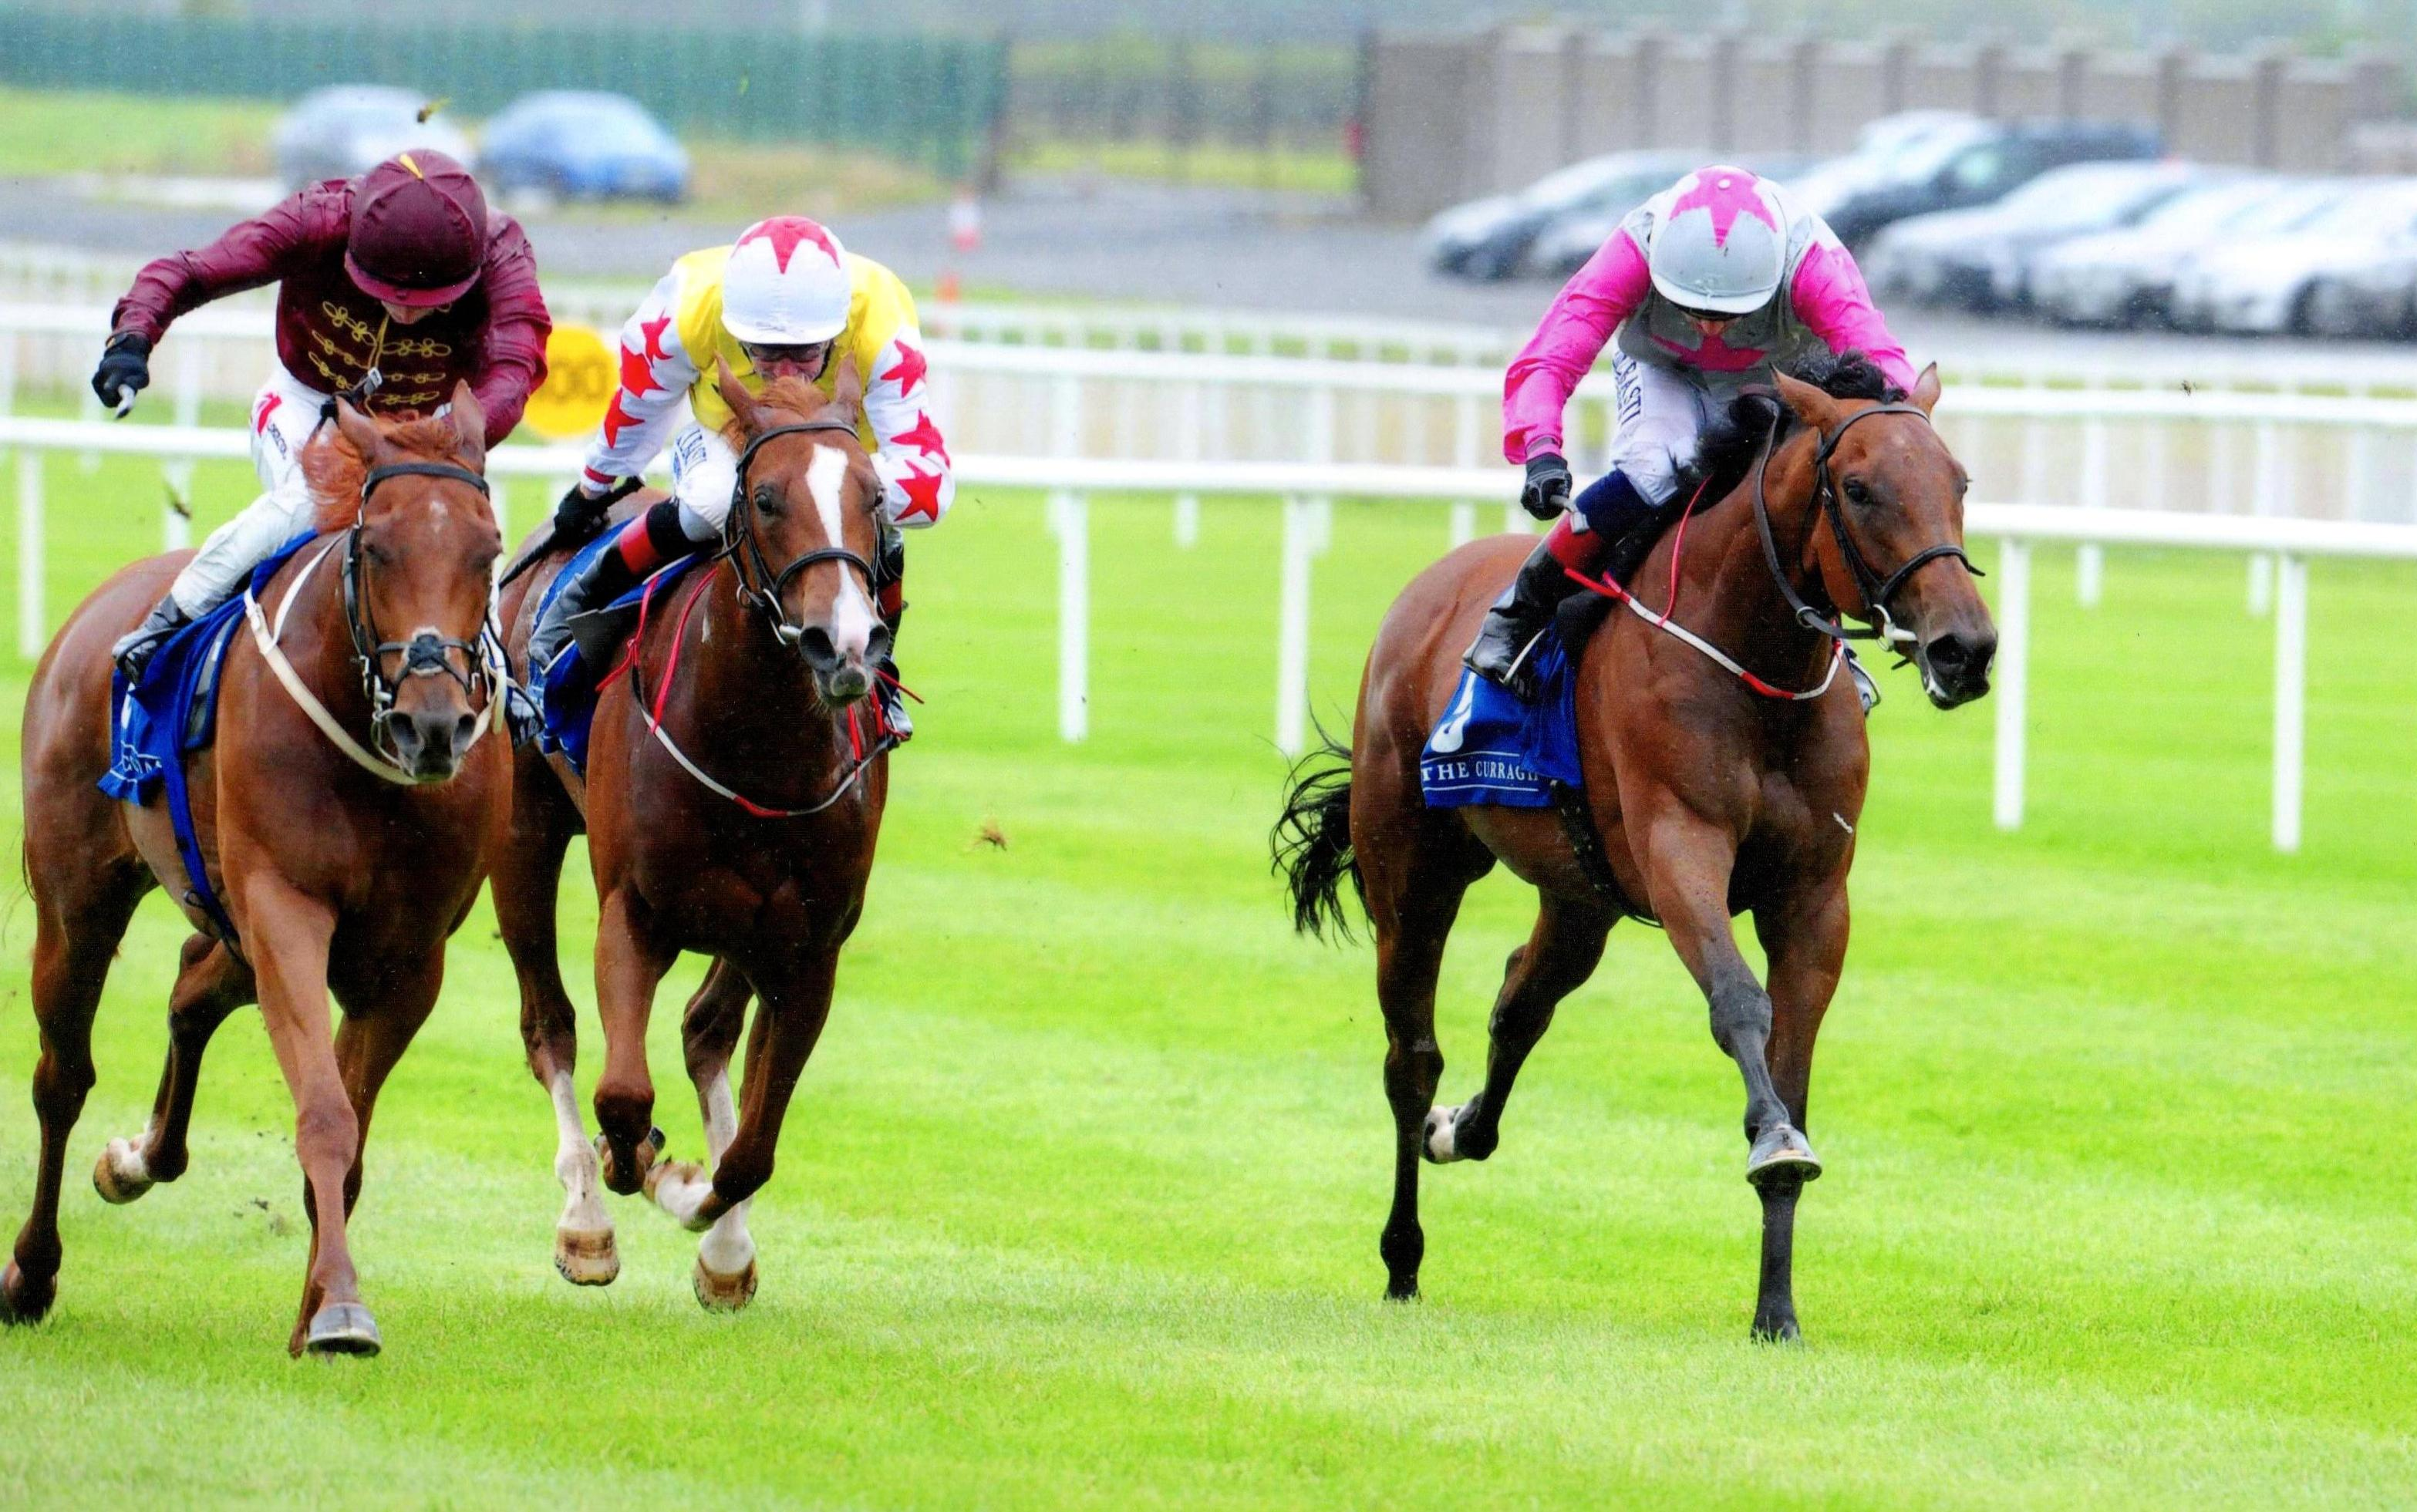 TREASURING lands valuable blacktype at The Curragh 20th August 2017